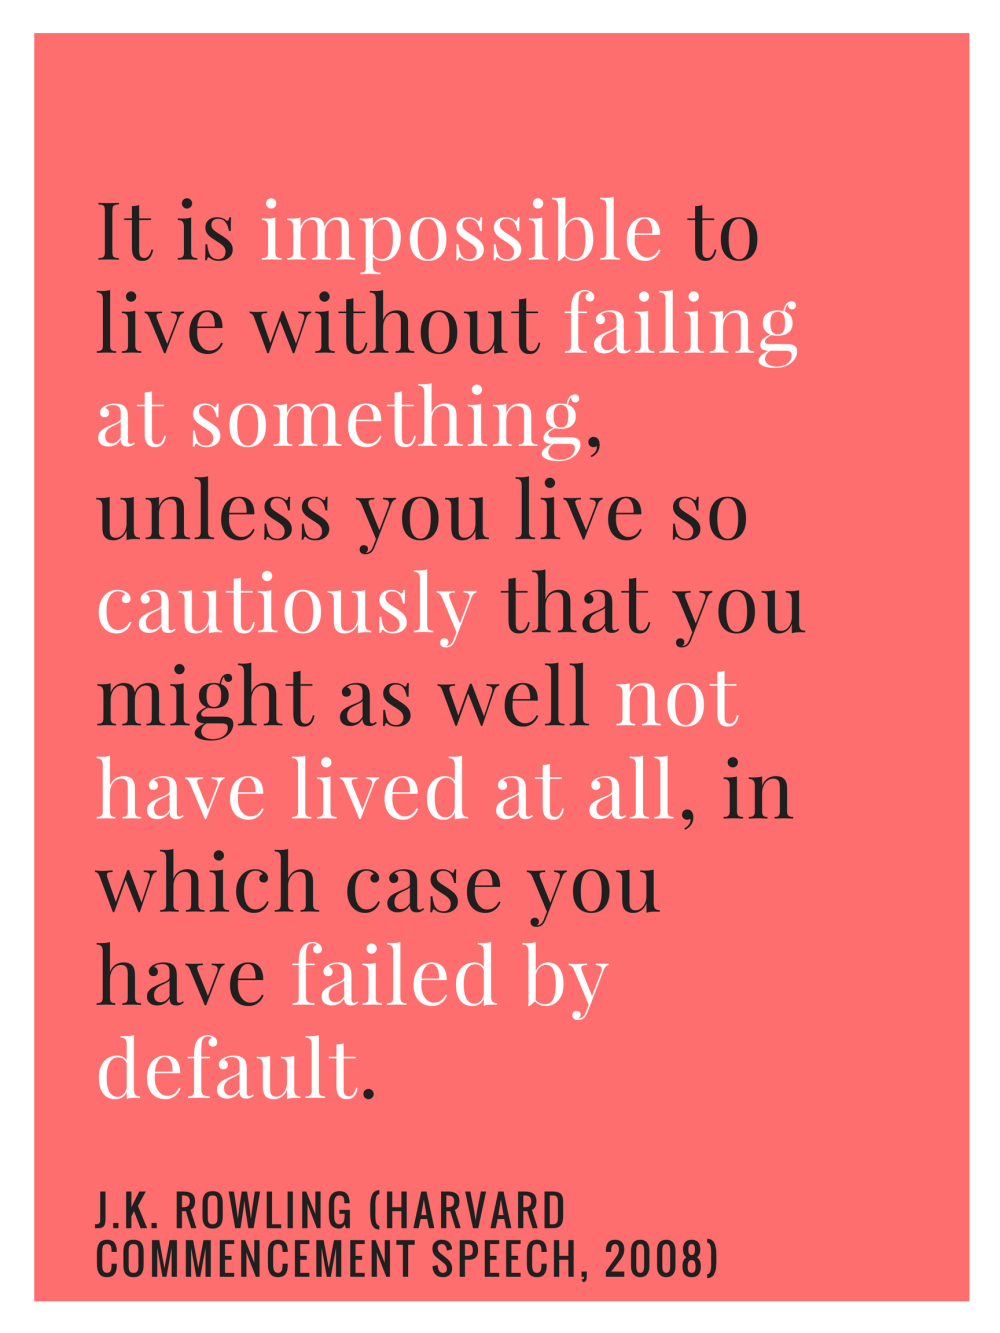 It is impossible to live without failing at something, unless you live so cautiously that you might as well not have lived at all, in which case you have failed by default.